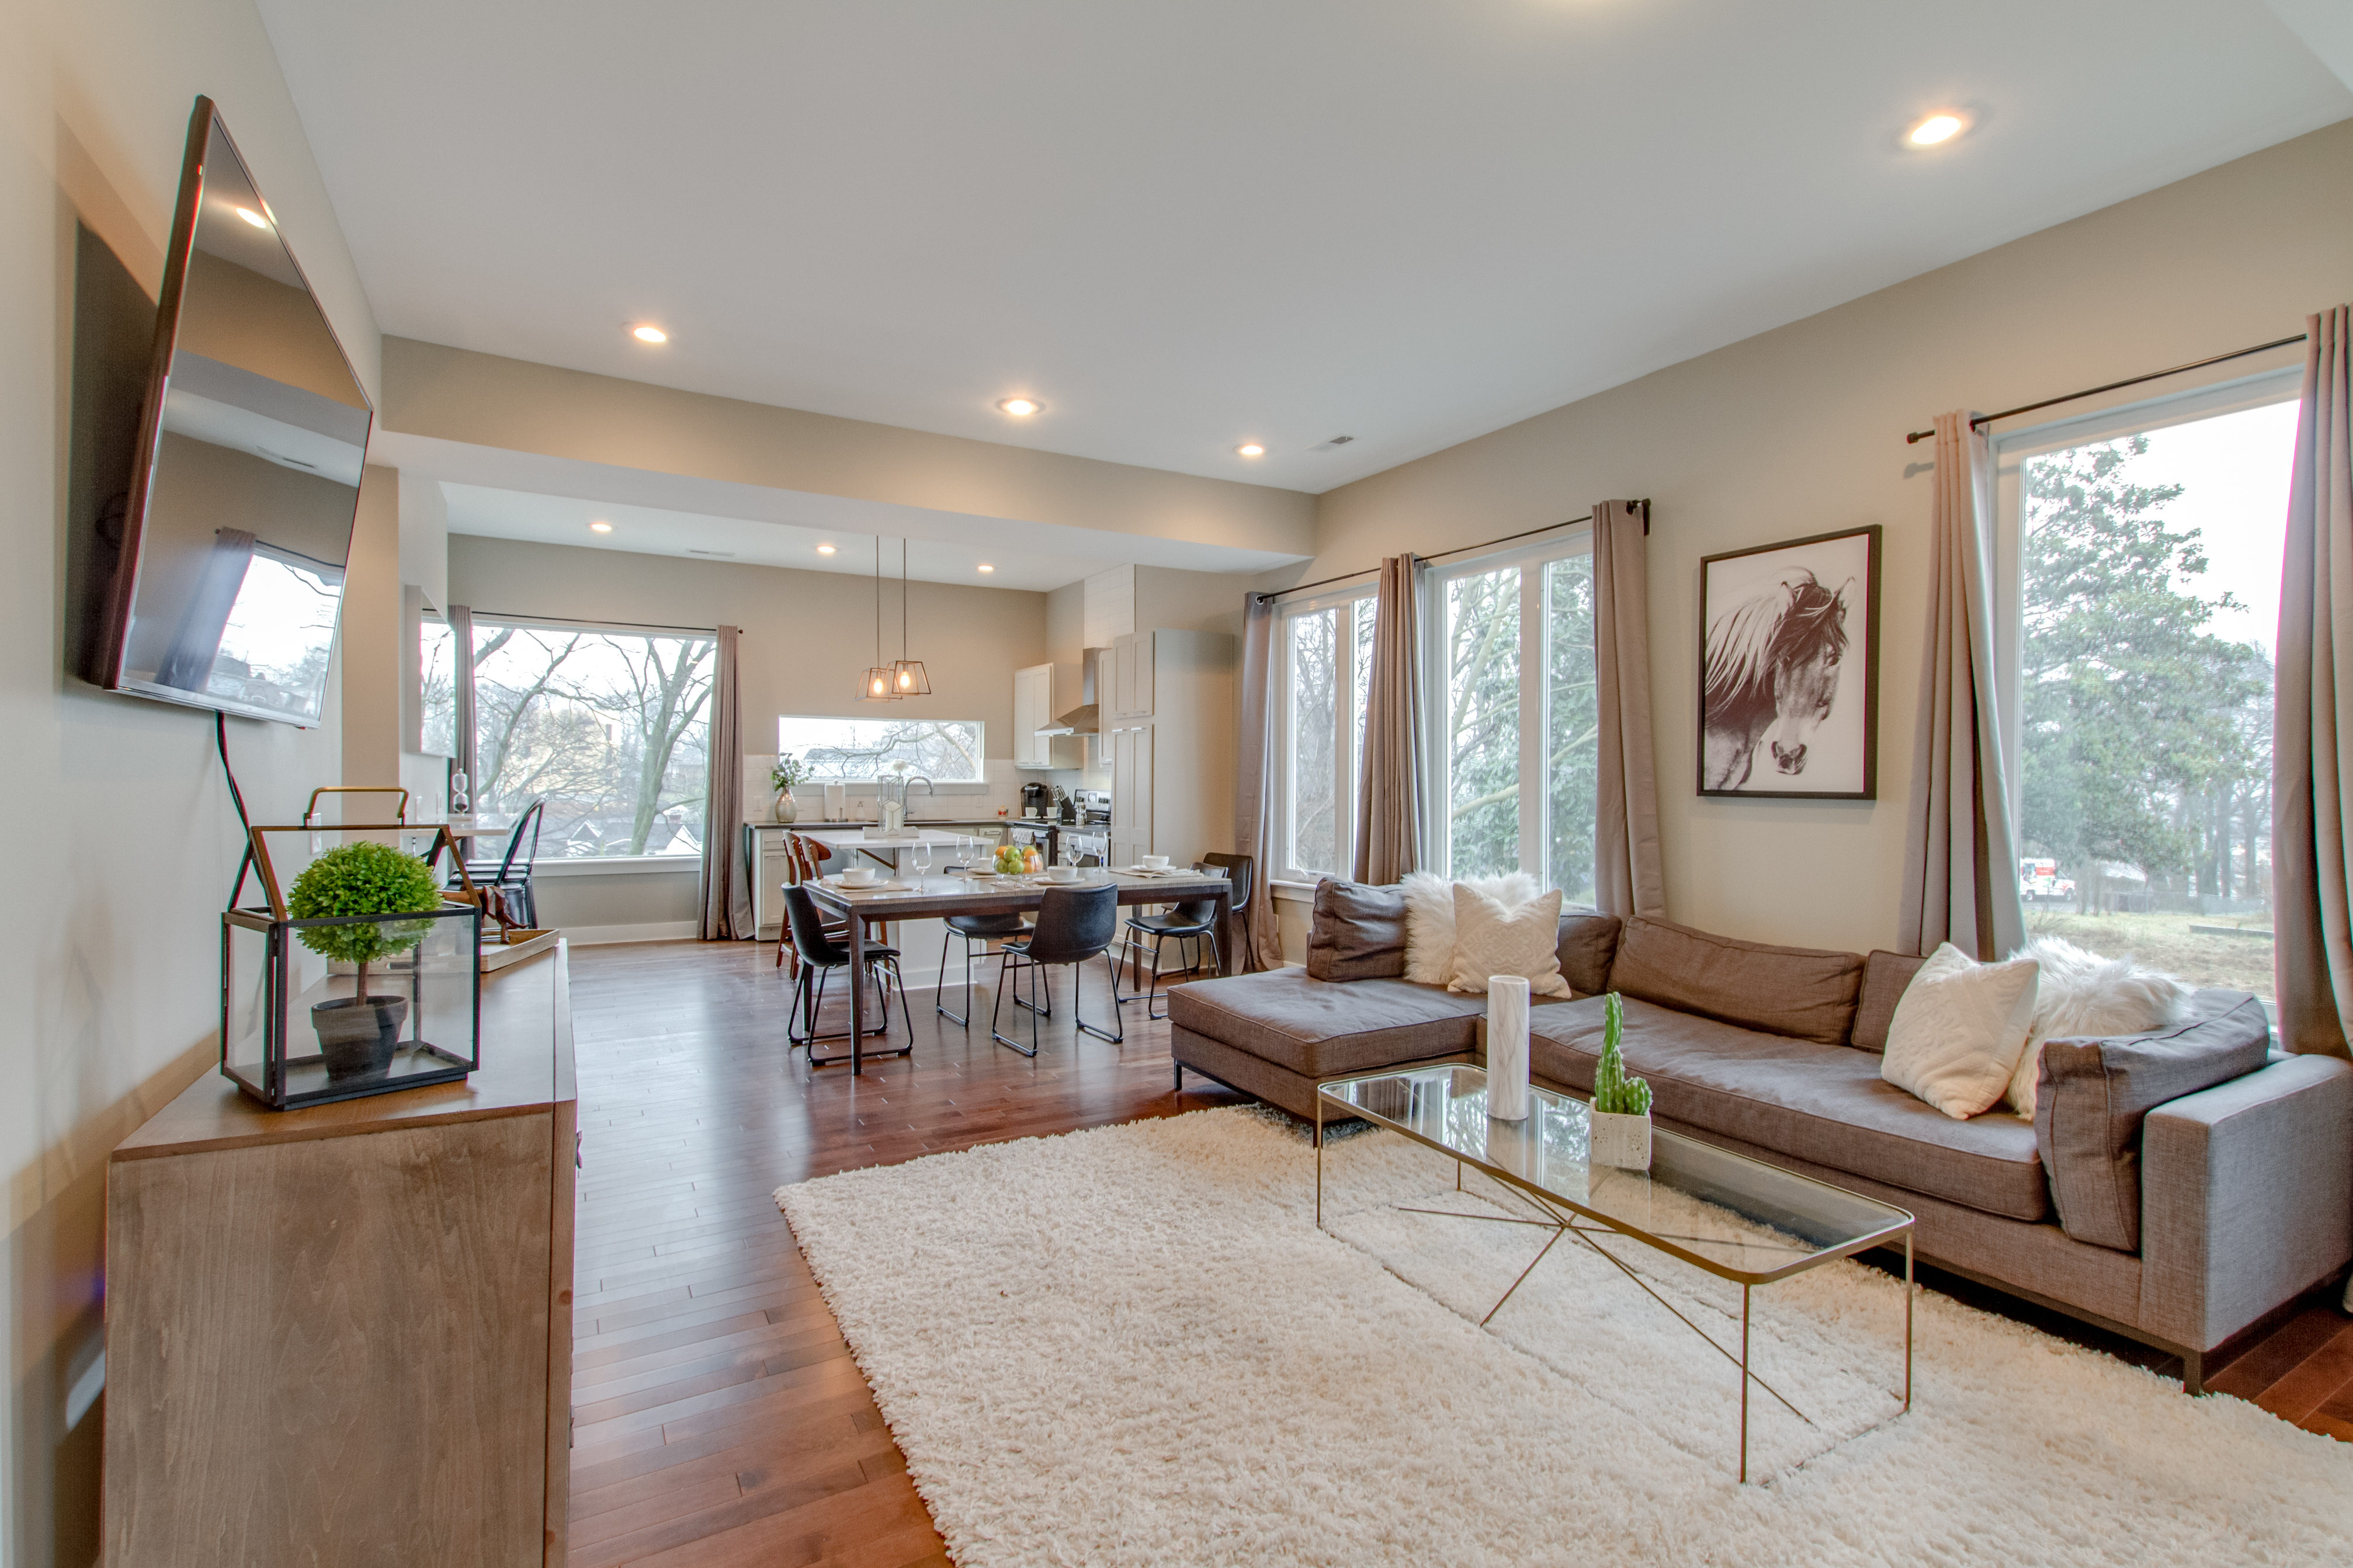 Property Image 1 - Luxury Gulch Home With High-End Finishes And Sophisticated Vibes